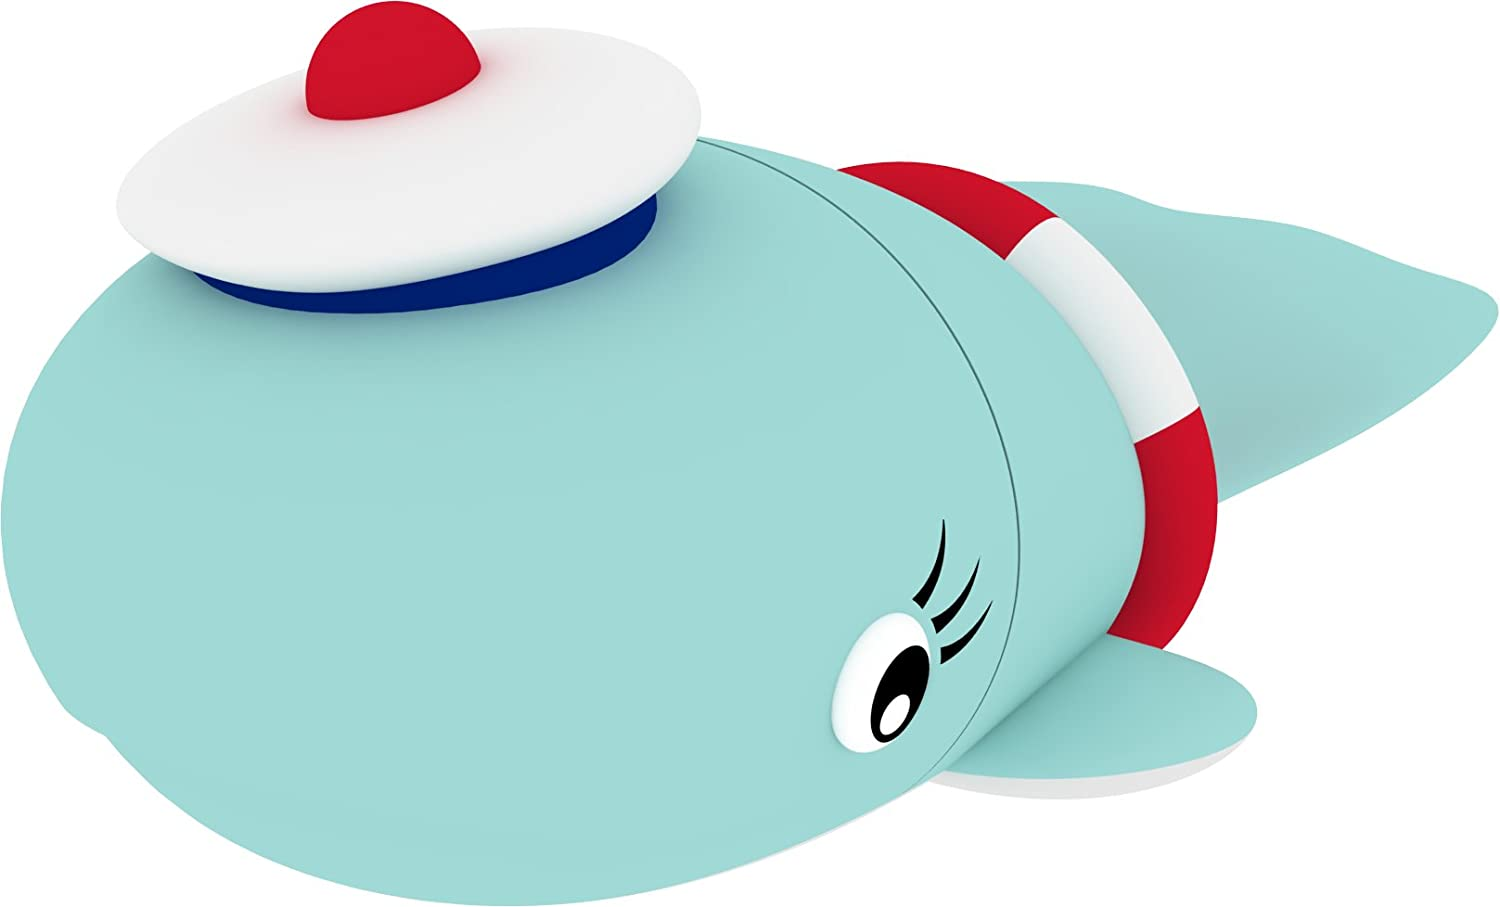 Animalitos 8 GB USB 2.0 Flash Drive, Baby Whale